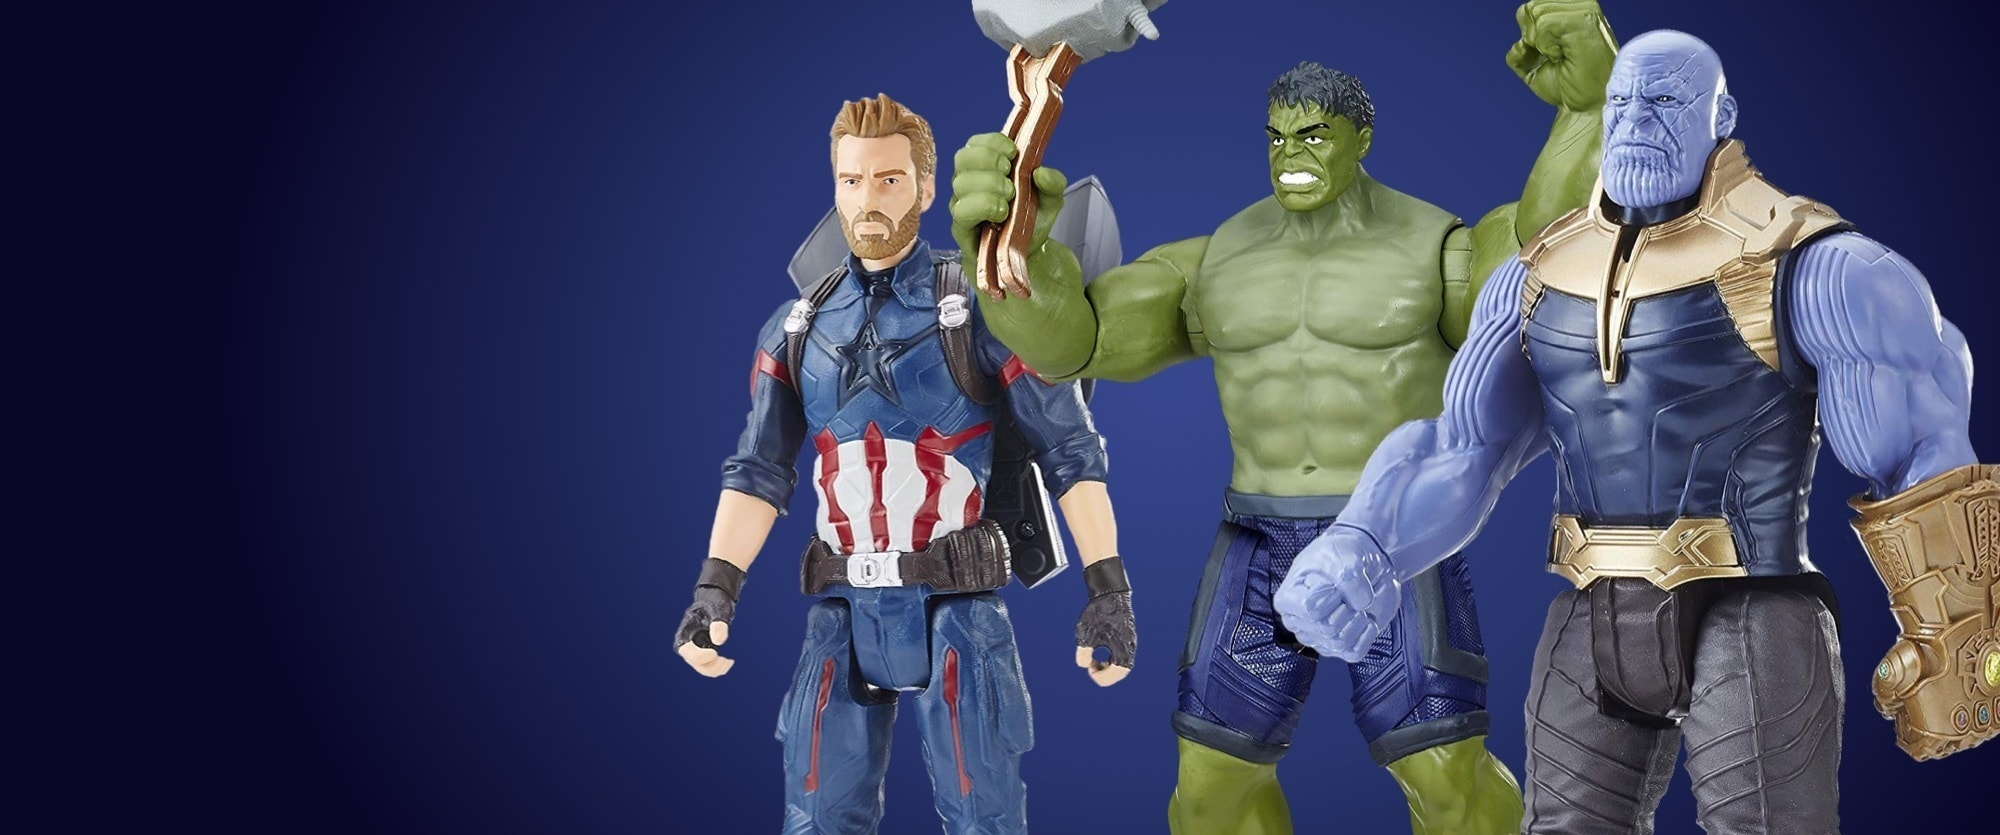 Marvel Merchandise - Toys, Clothing, Collectibles & More | Shop Now at Amazon